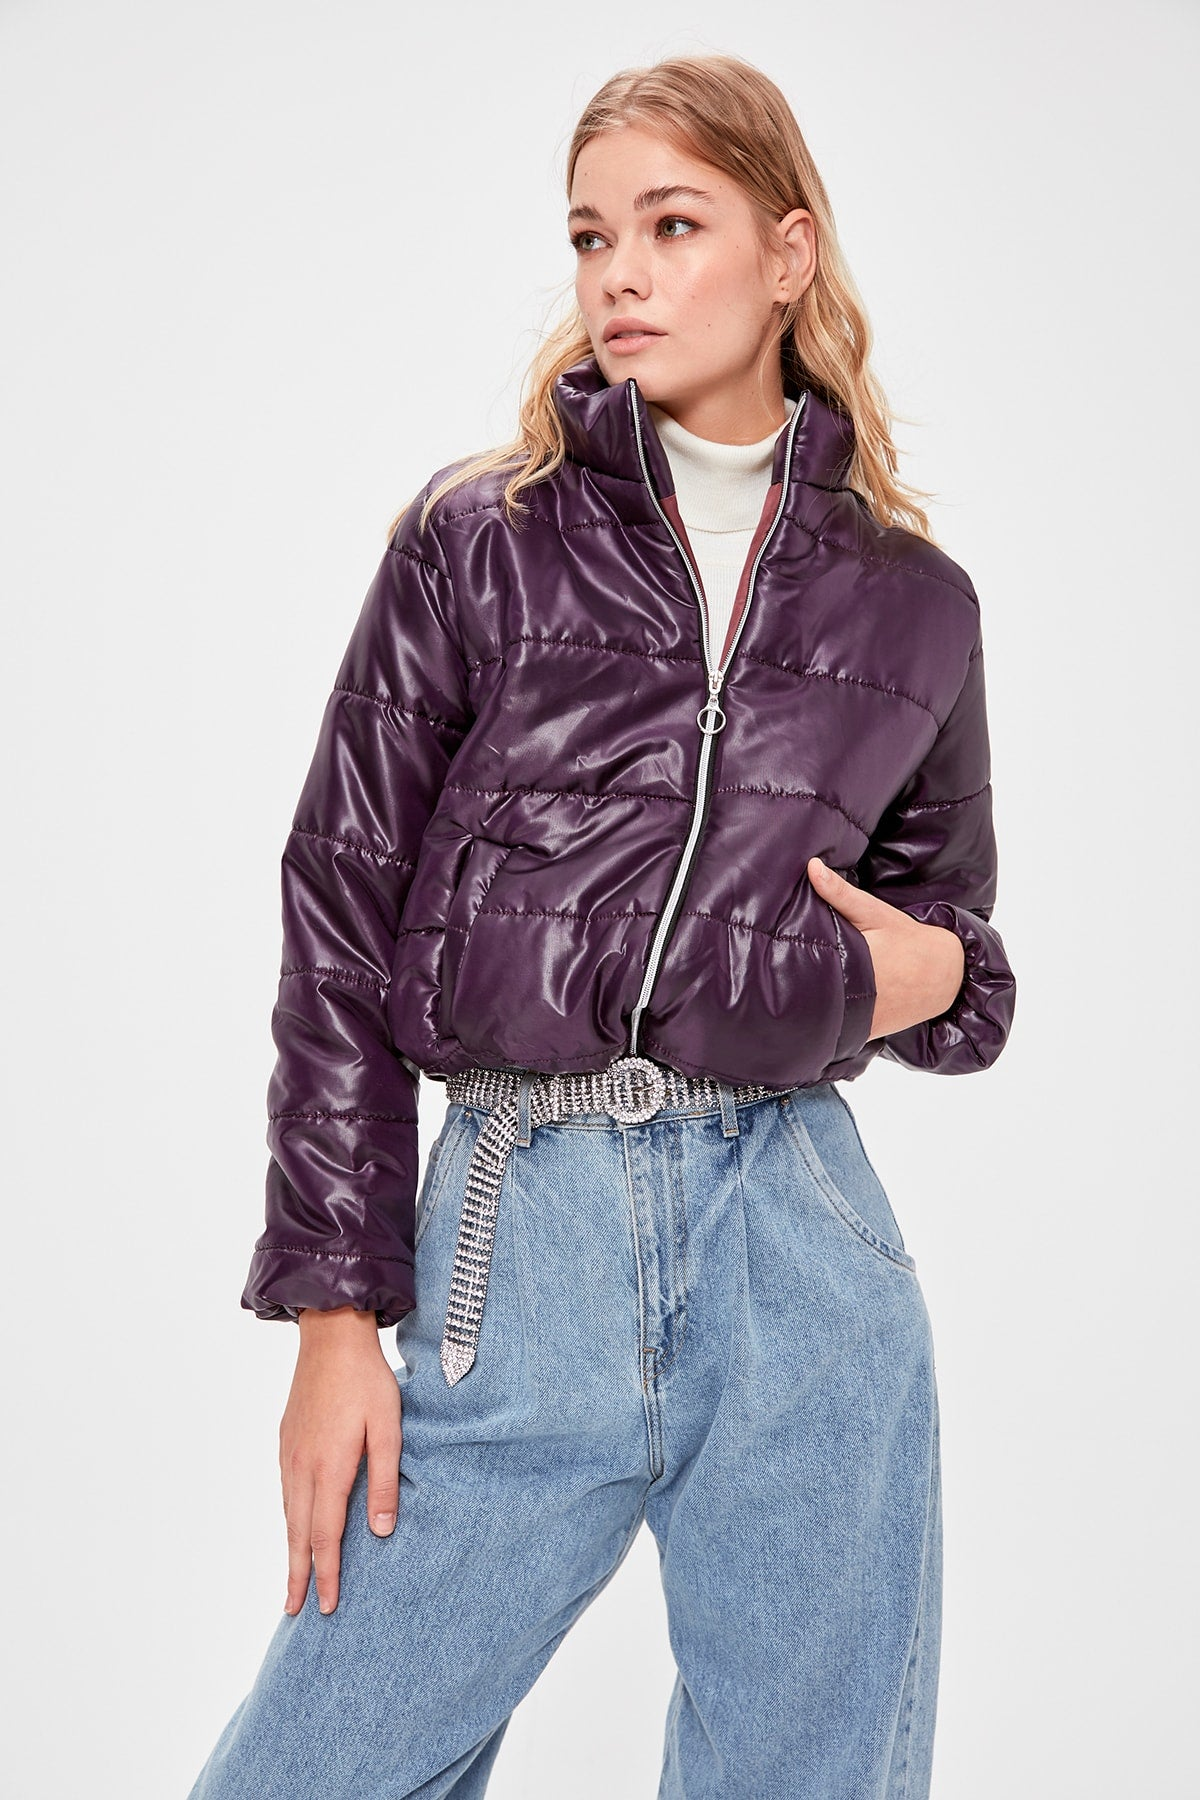 Trendyol Damson Zipper It Should Cover Upright Collar Inflatable Crop coats TWOAW20MO0088